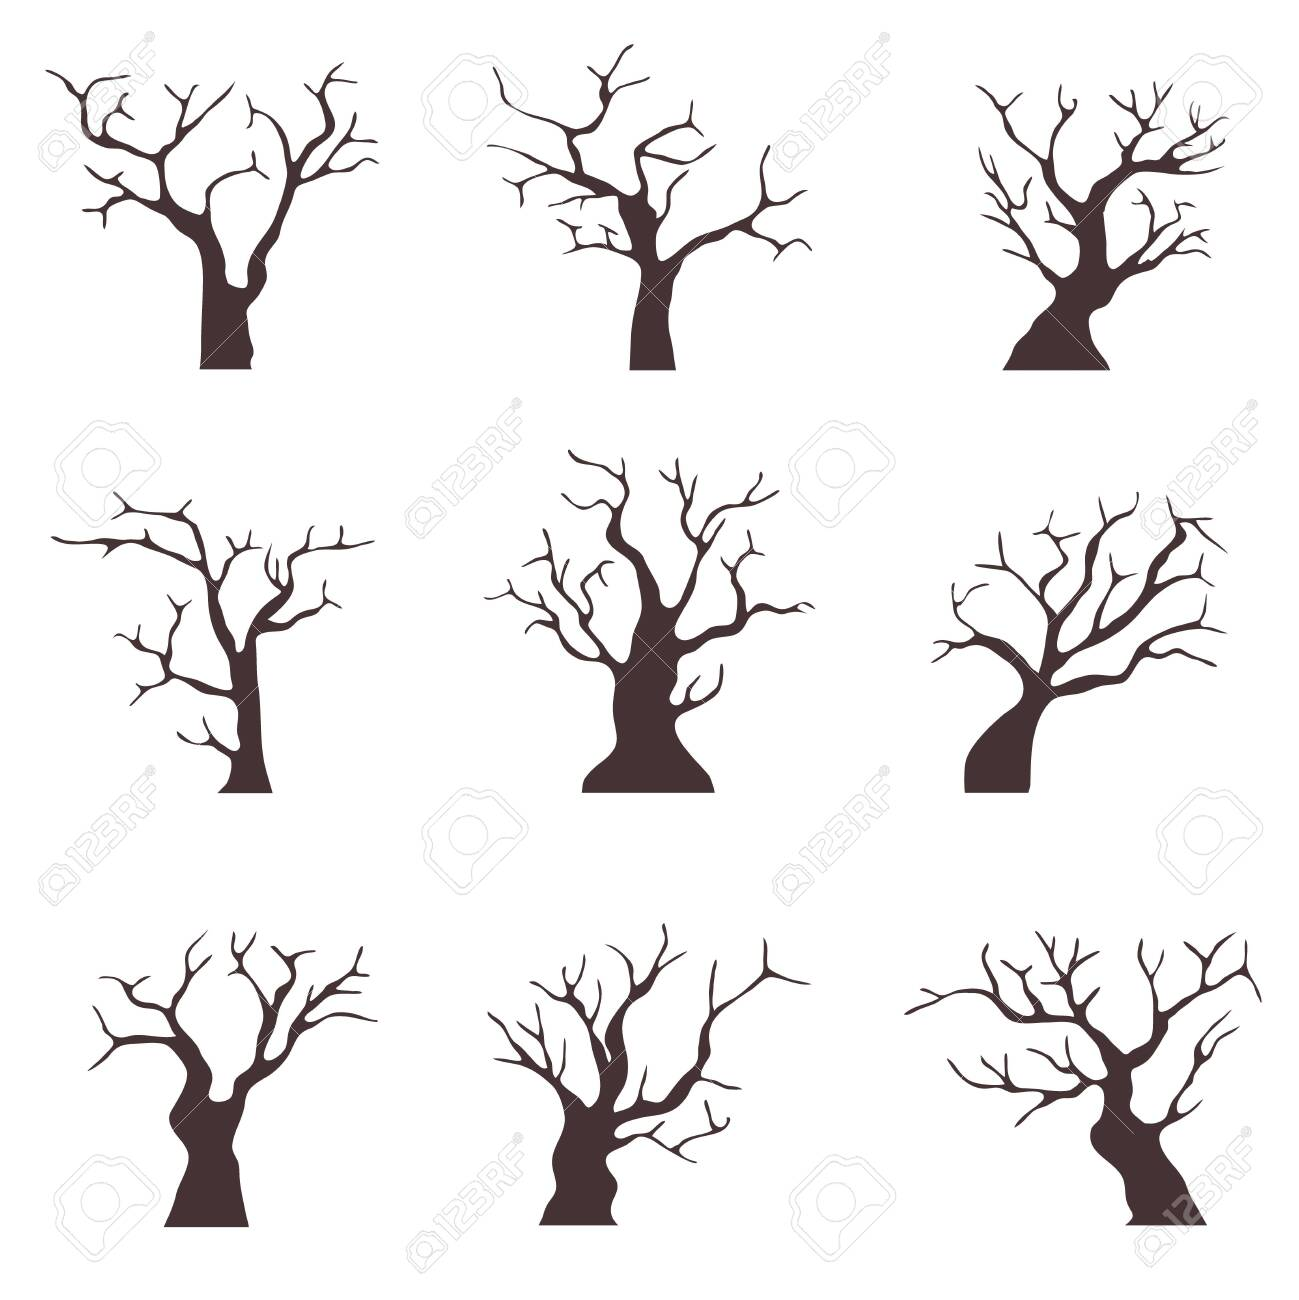 Old trees without leaves. A collection of old black trees with dry branches. Cartoon illustration of old dry wood. Vector - 135163655